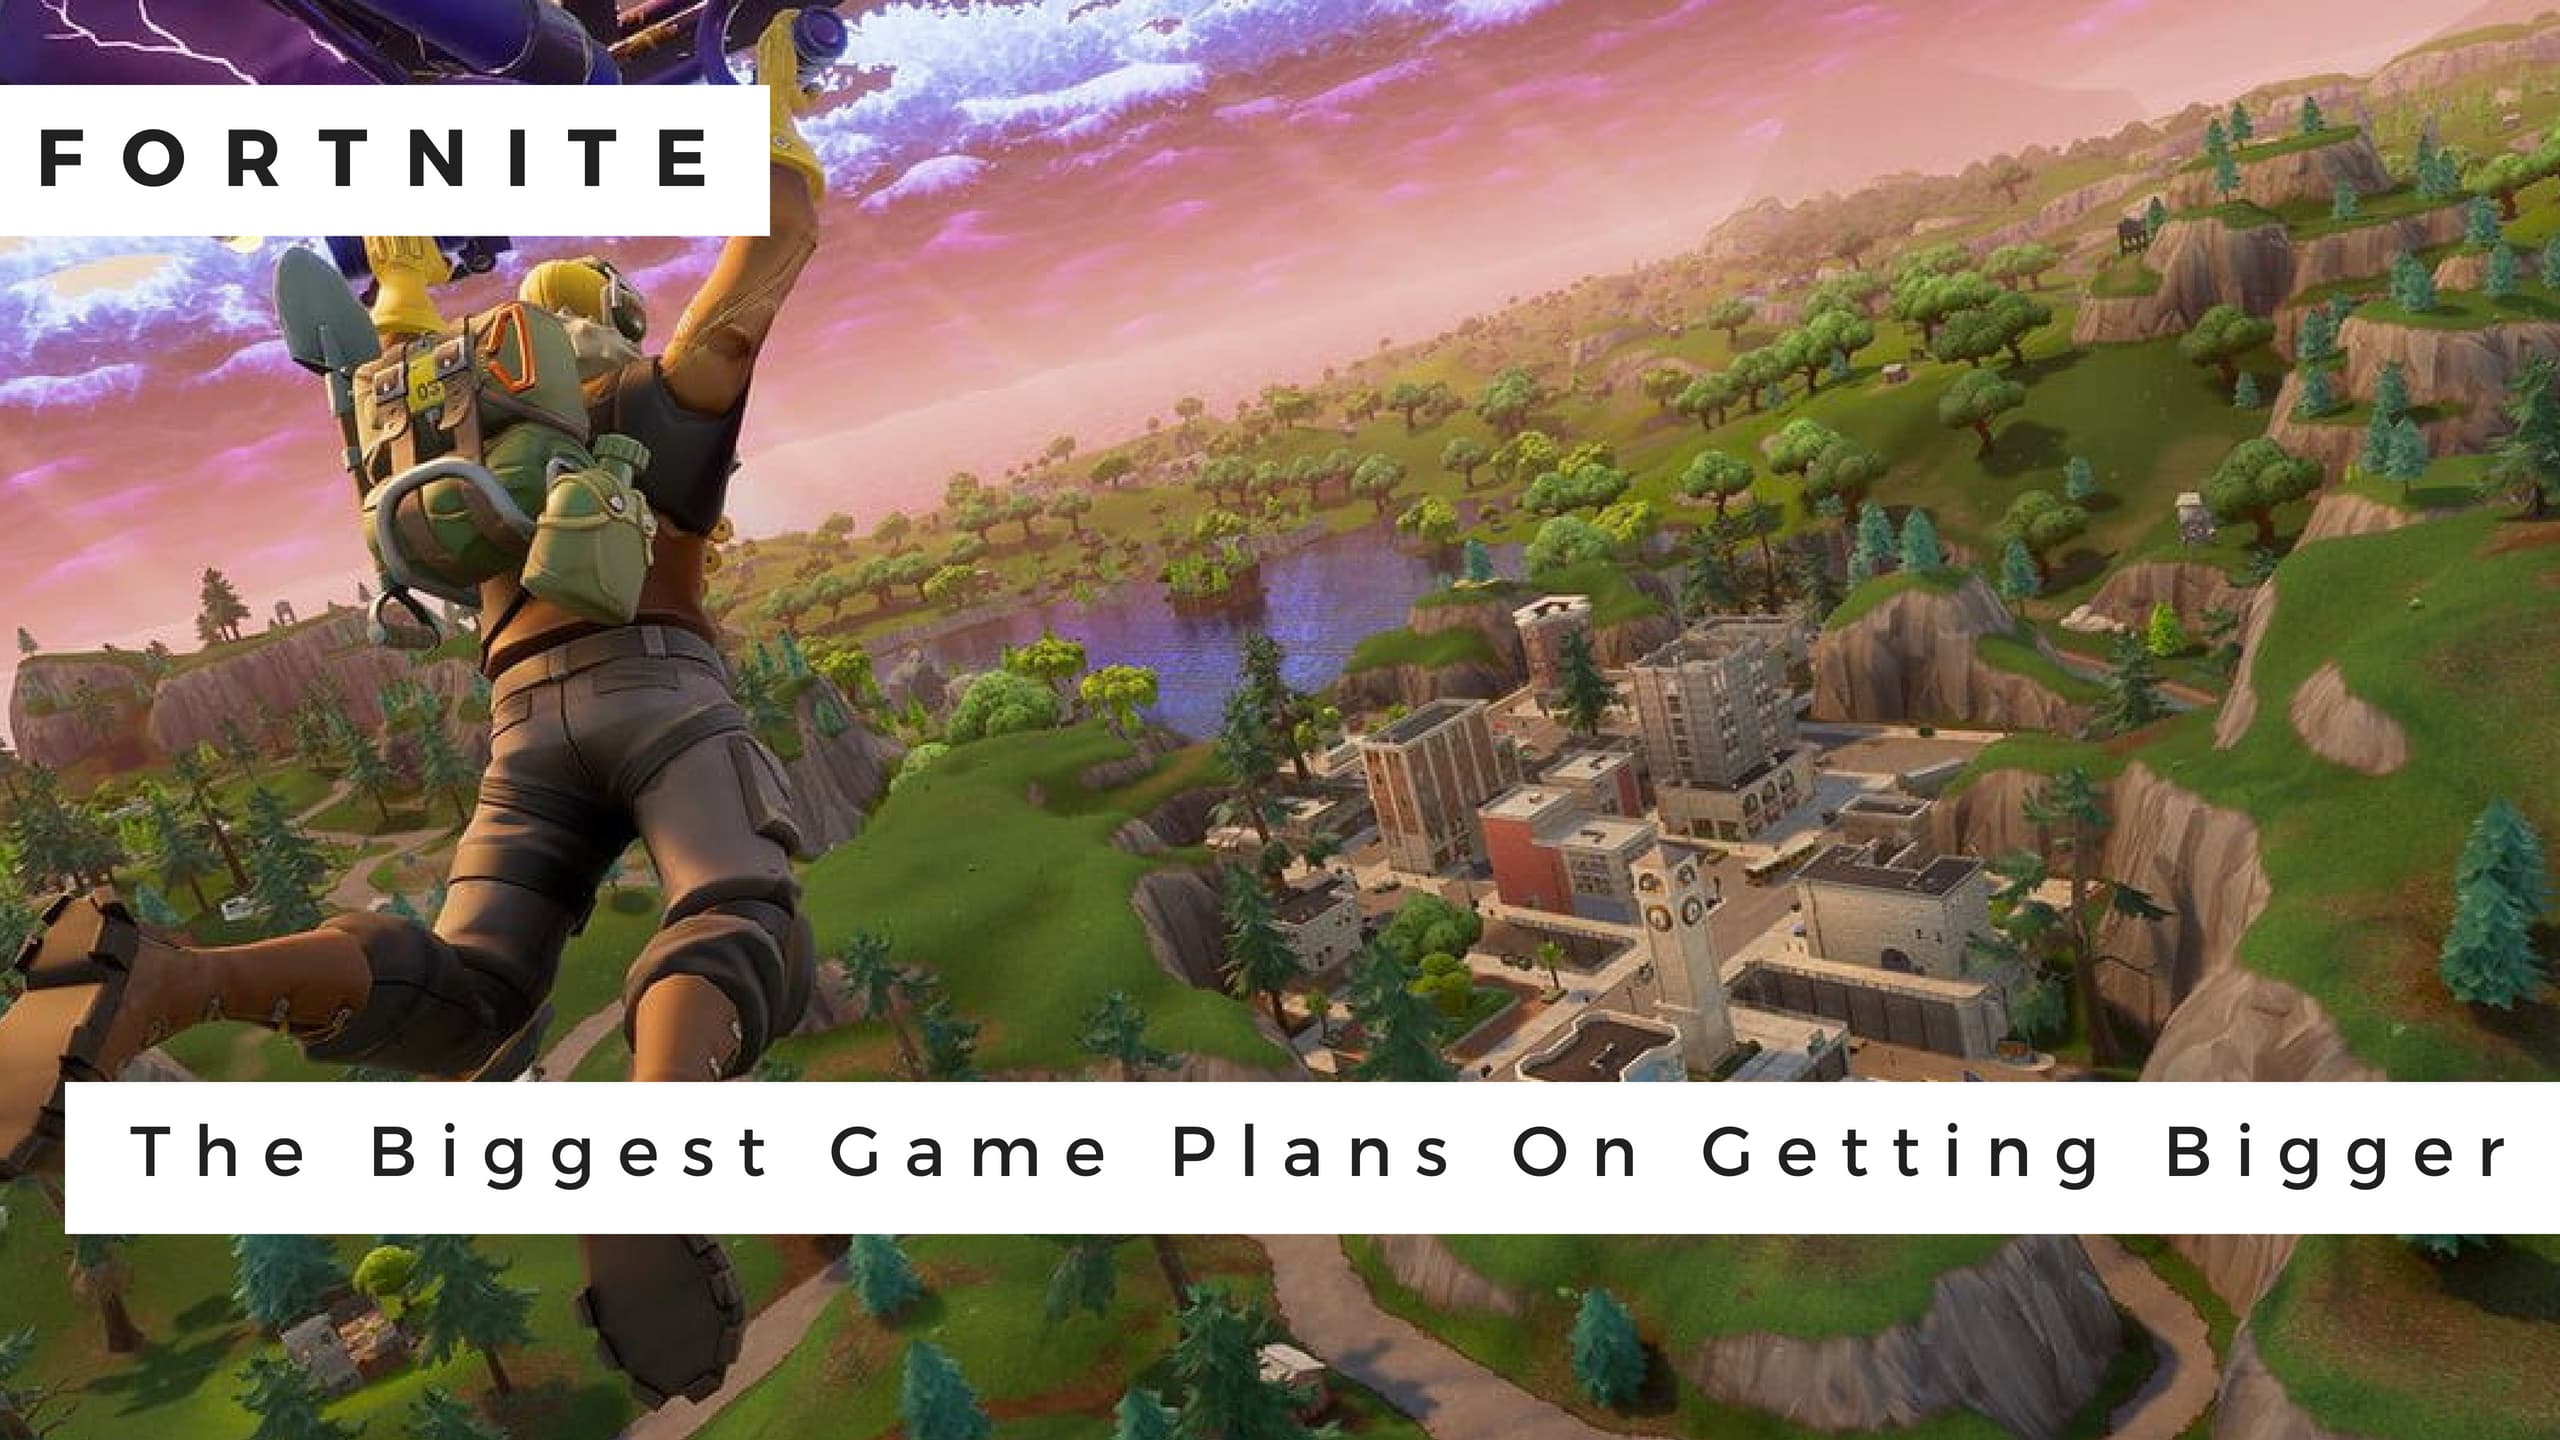 Fortnite: The Biggest Game Plans On Getting Bigger